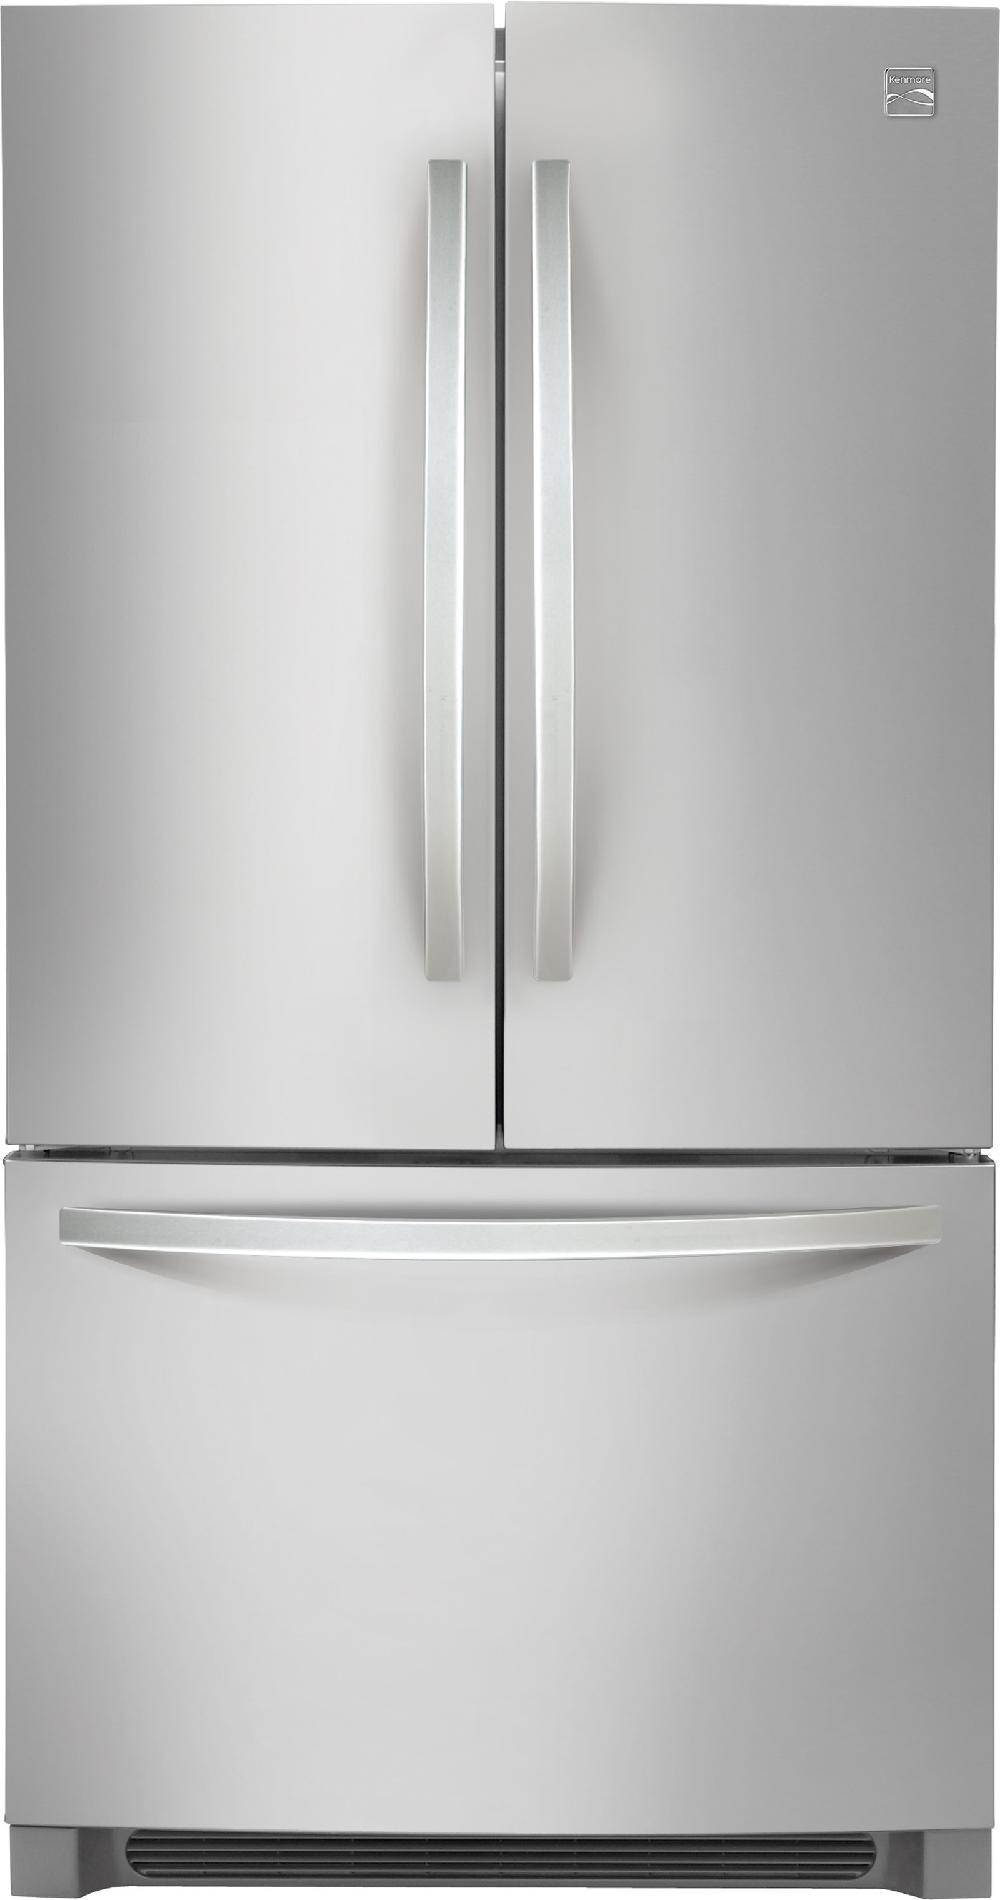 Kenmore-70423-22-3-cu-ft-Counter-Depth-French-Door-Refrigerator-Stainless-Steel